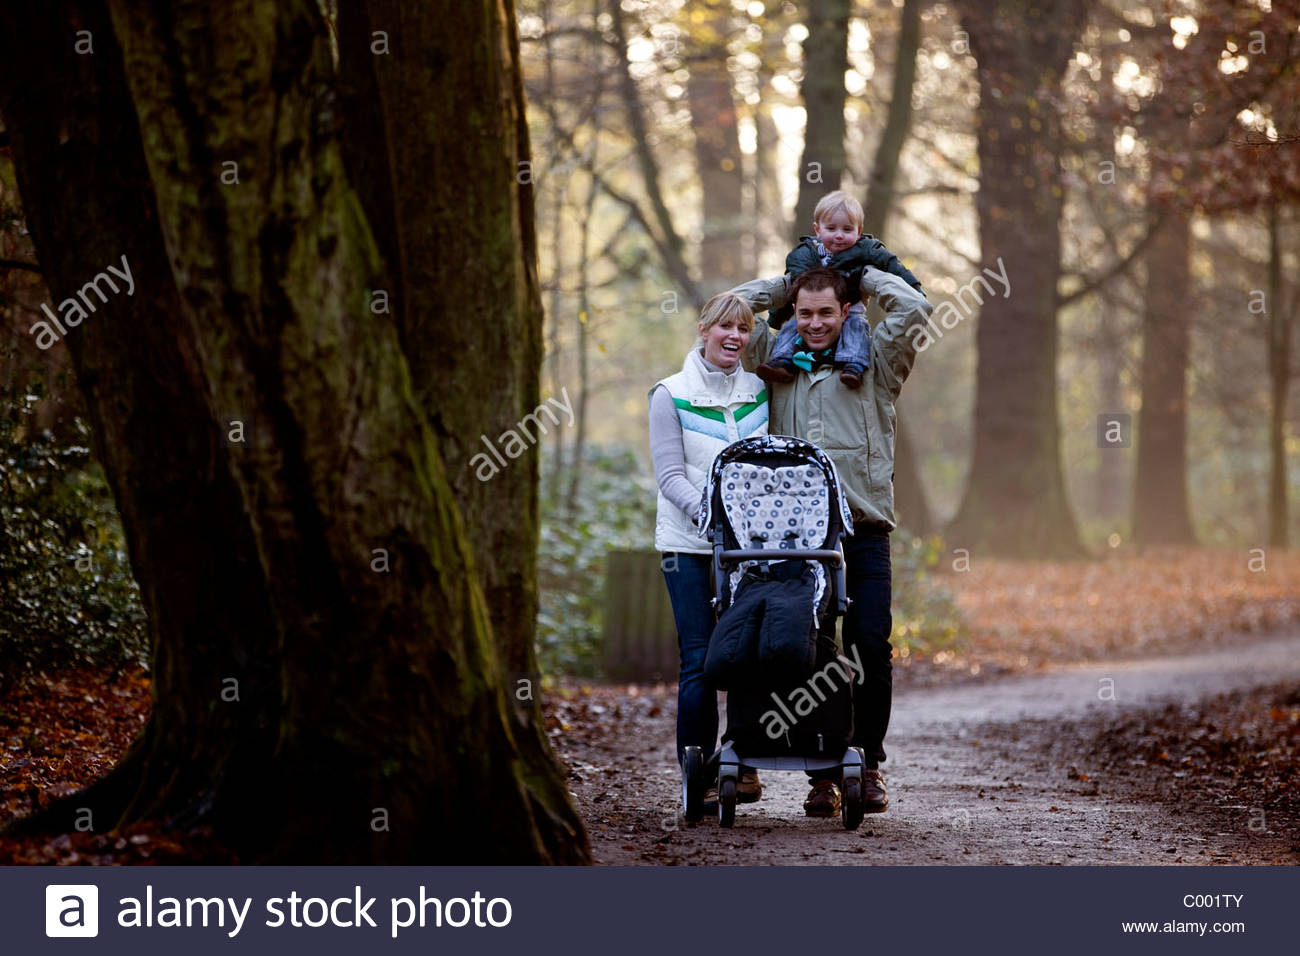 A family walking in the park, father carrying his son on his shoulders - Stock Image